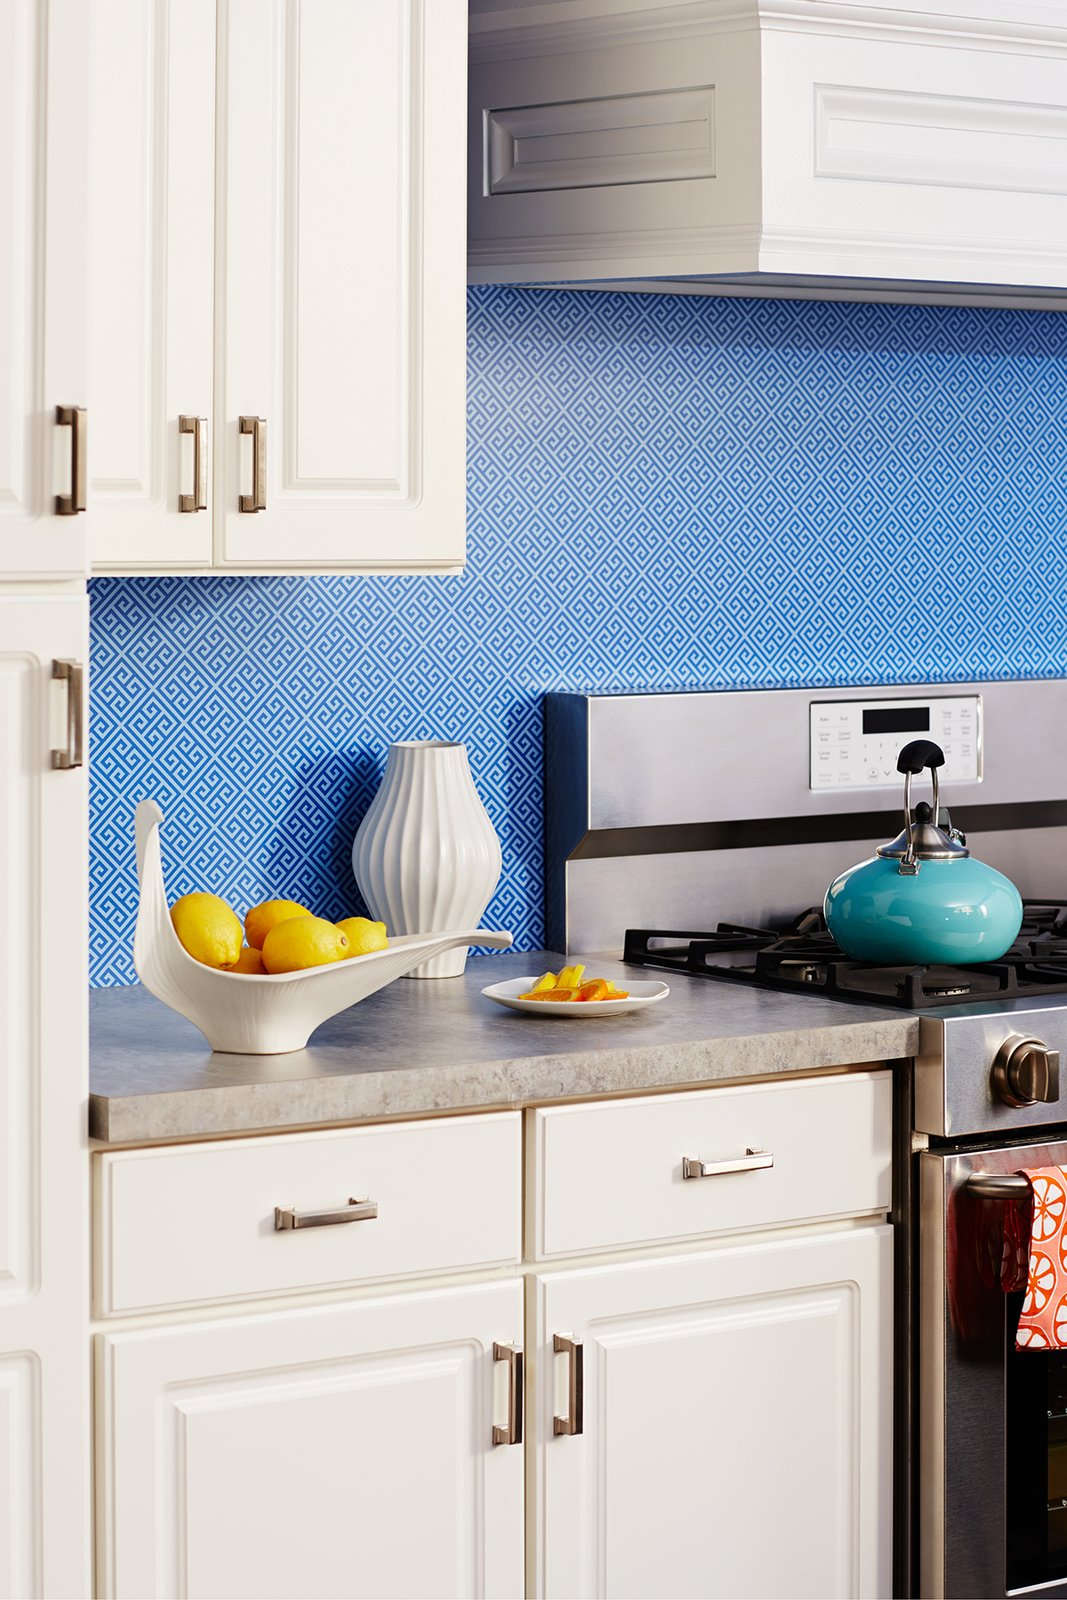 25 Backsplash Ideas For Your Kitchen Renovation » Coastal Properties ...